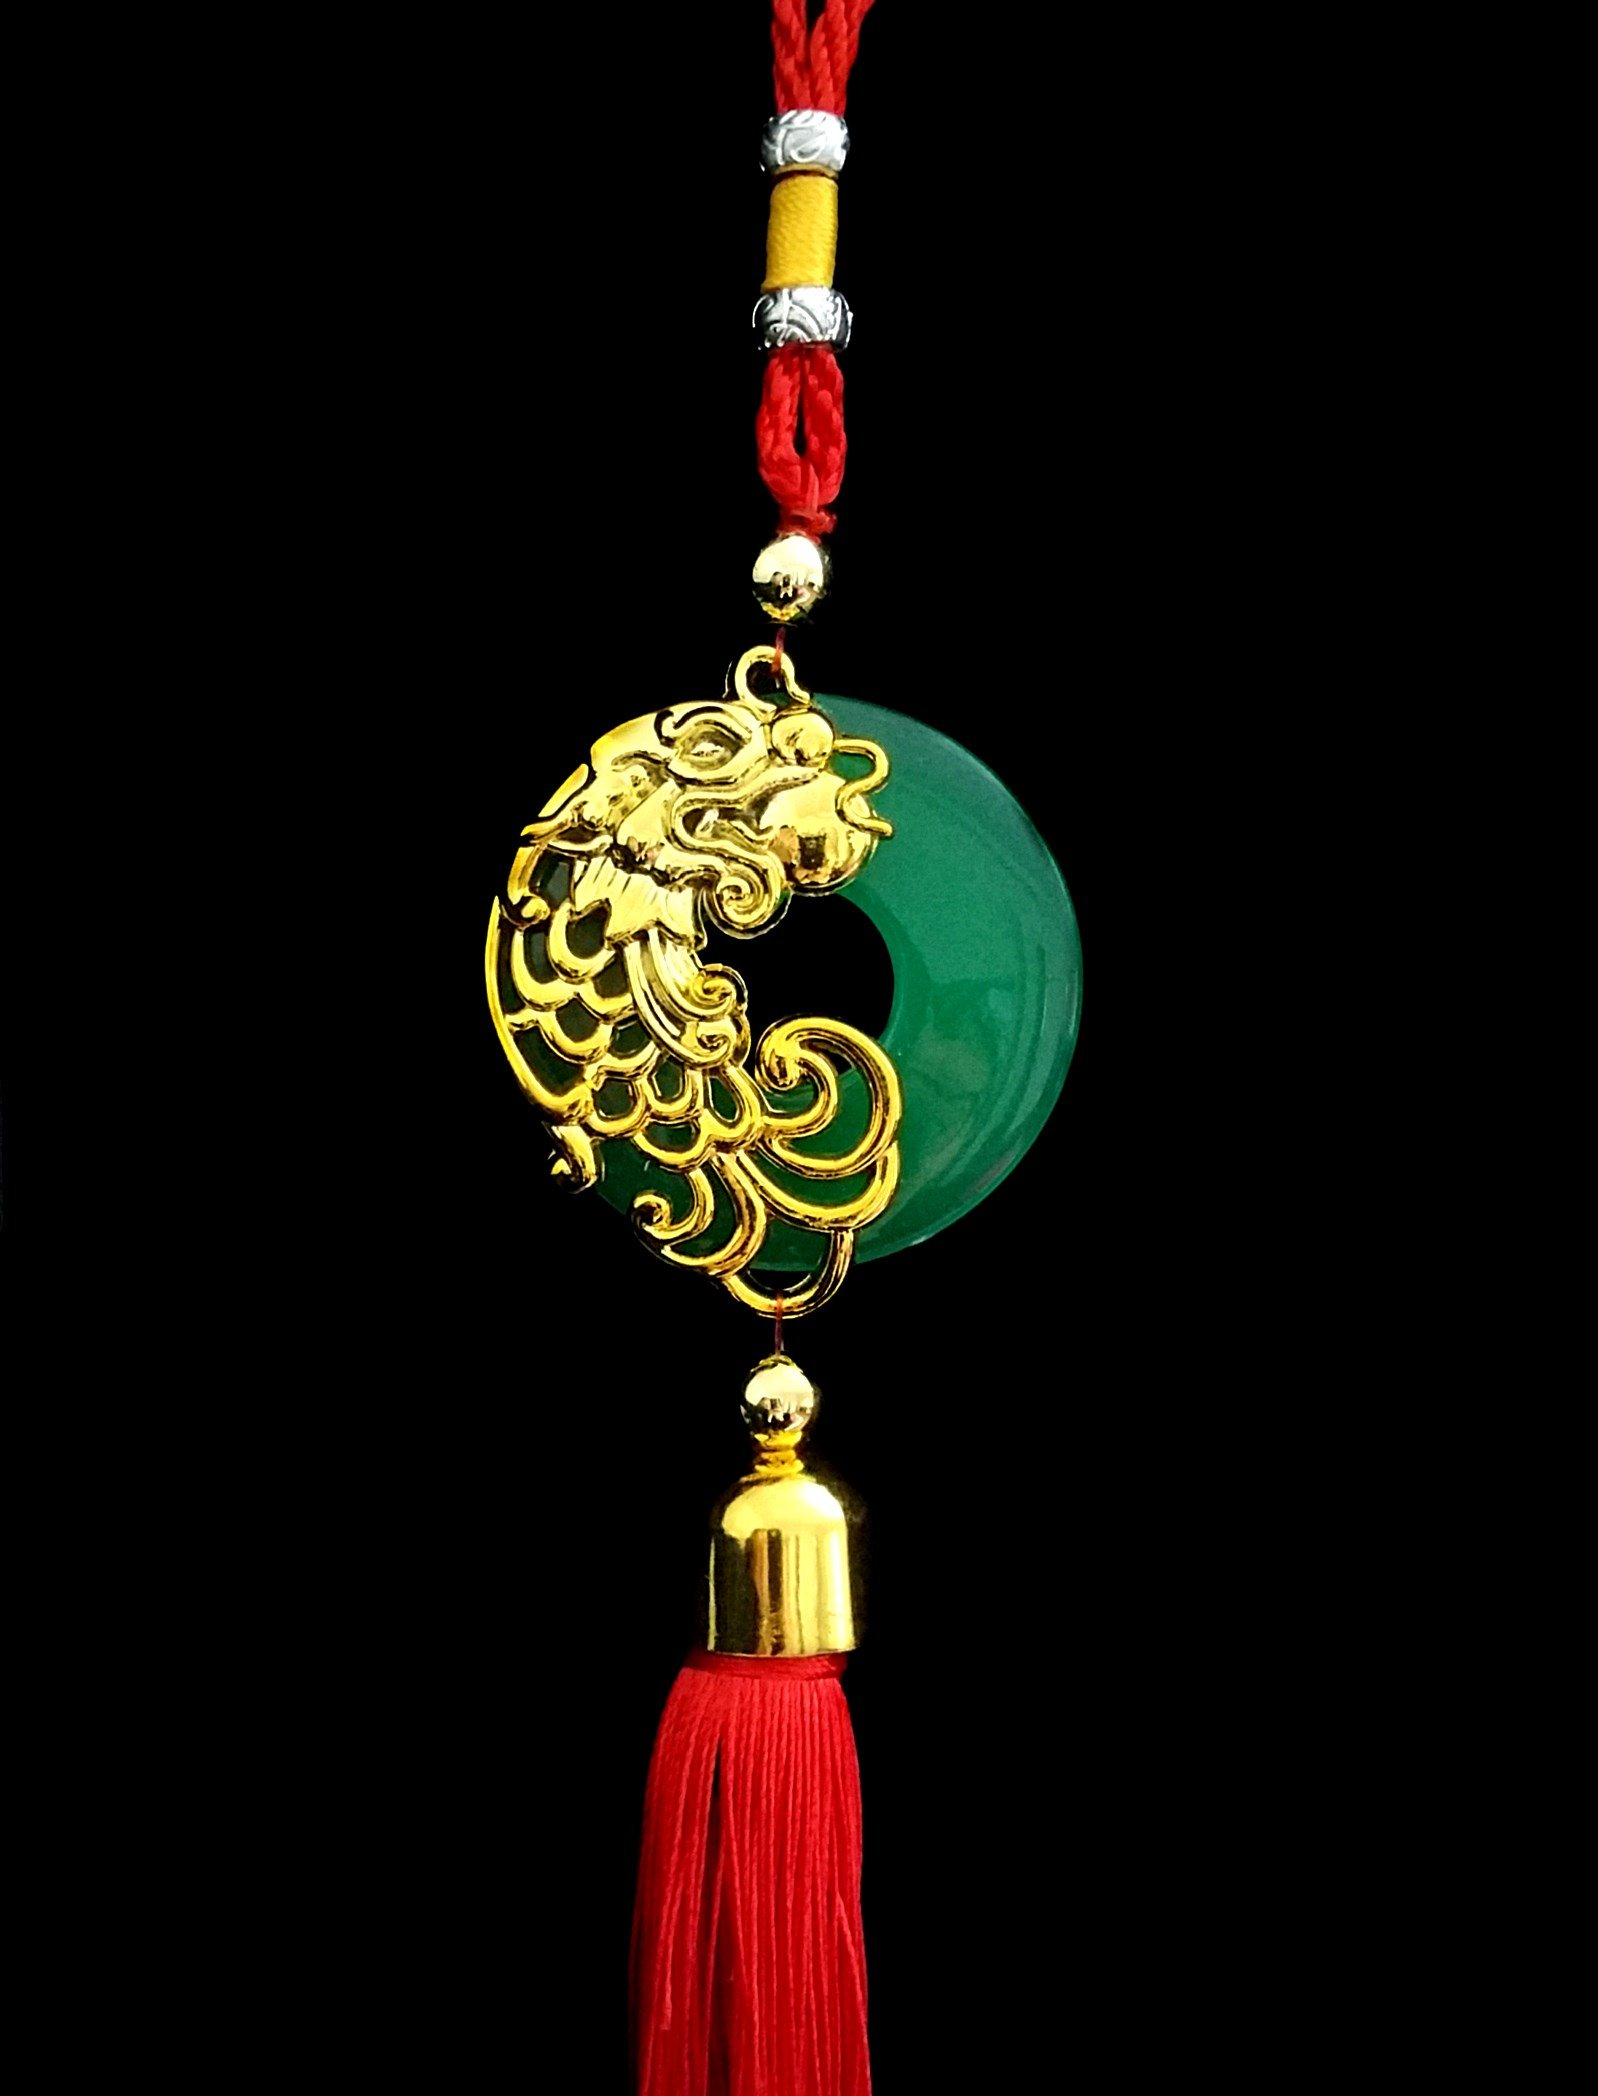 Handmade Feng Shui Chinese Dragon Hanging or Charm for Prosperity (With a Betterdecor Pounch)